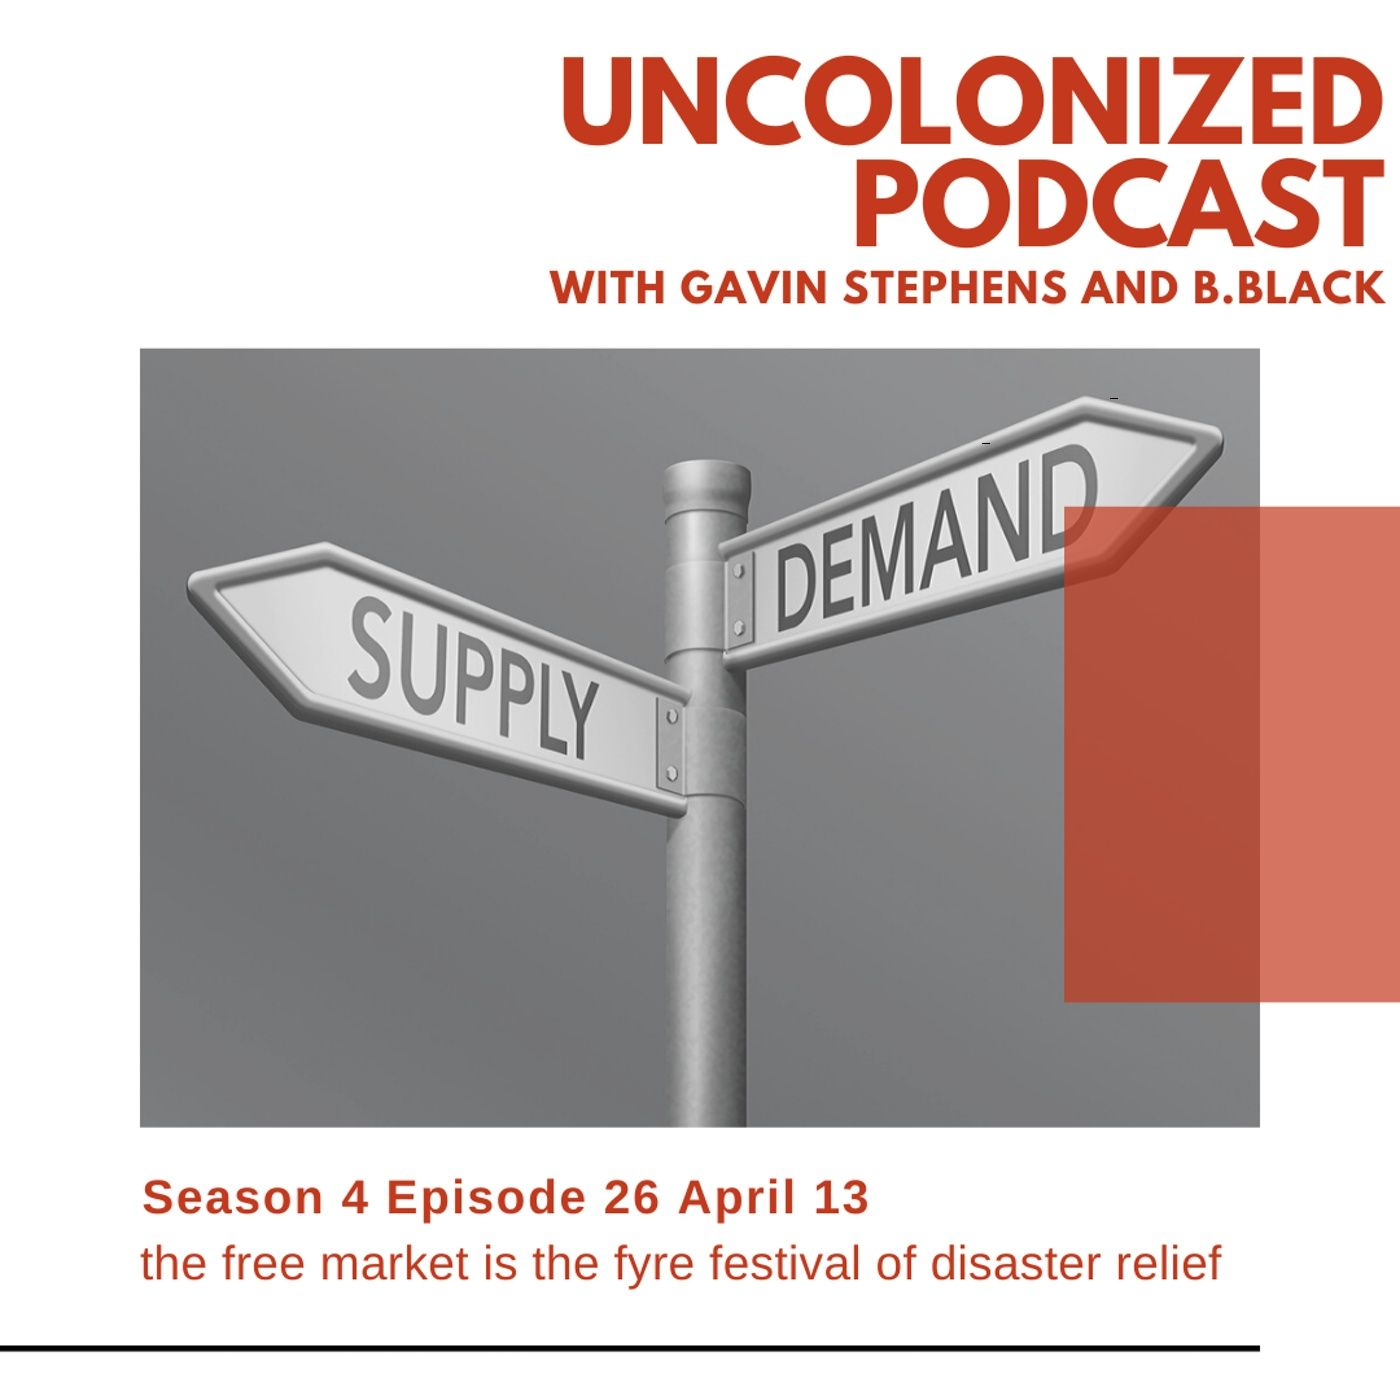 S04E26 - The Free Market is the Frye Festival of disaster relief